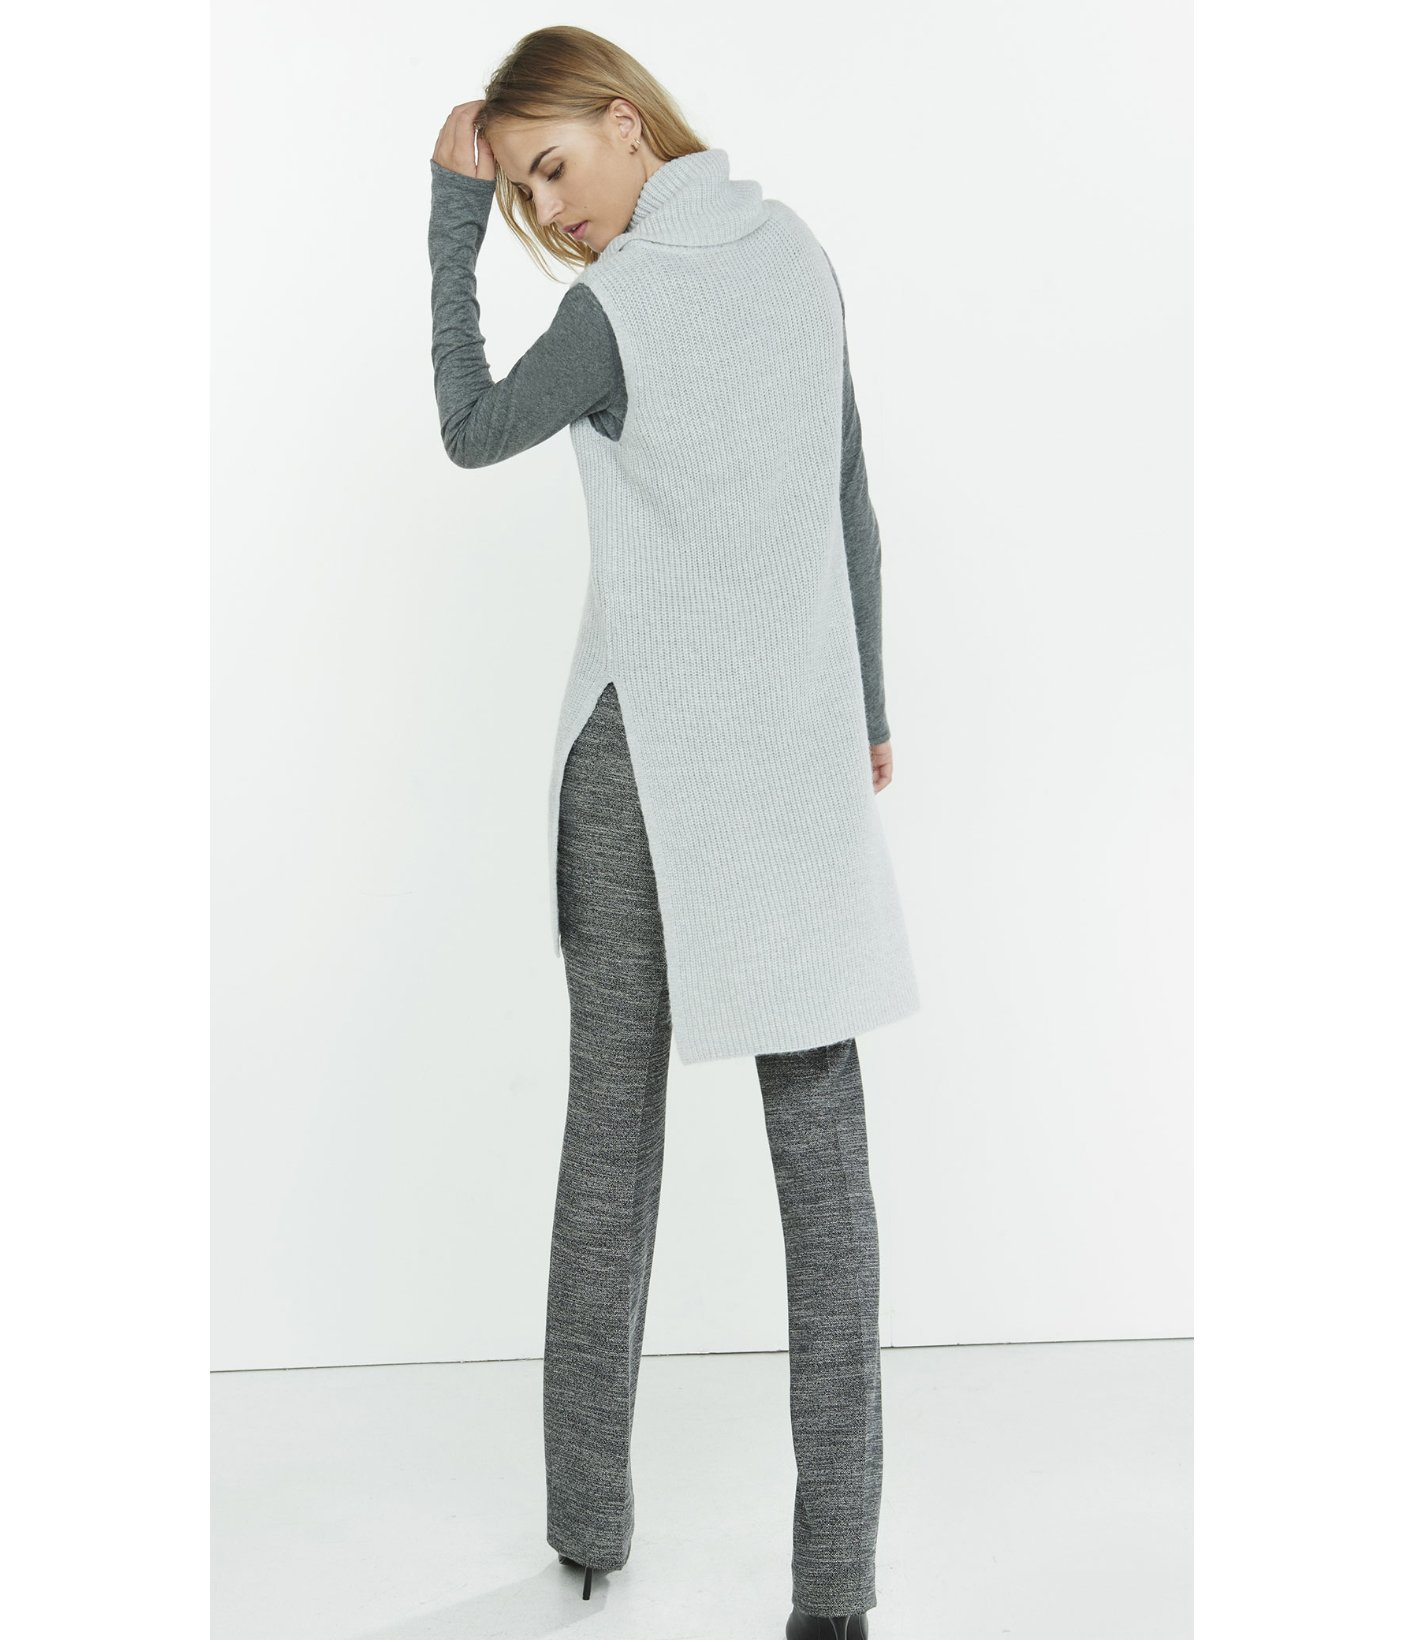 Aran Cowl Neck Tunic Sweater - Reviews This Cowl Neck Tunic Sweater, featuring the popular Aran Cable design (used in many Irish sweaters), is perfect for those looking for the sweater dress look over leggings or jeans.5/5.